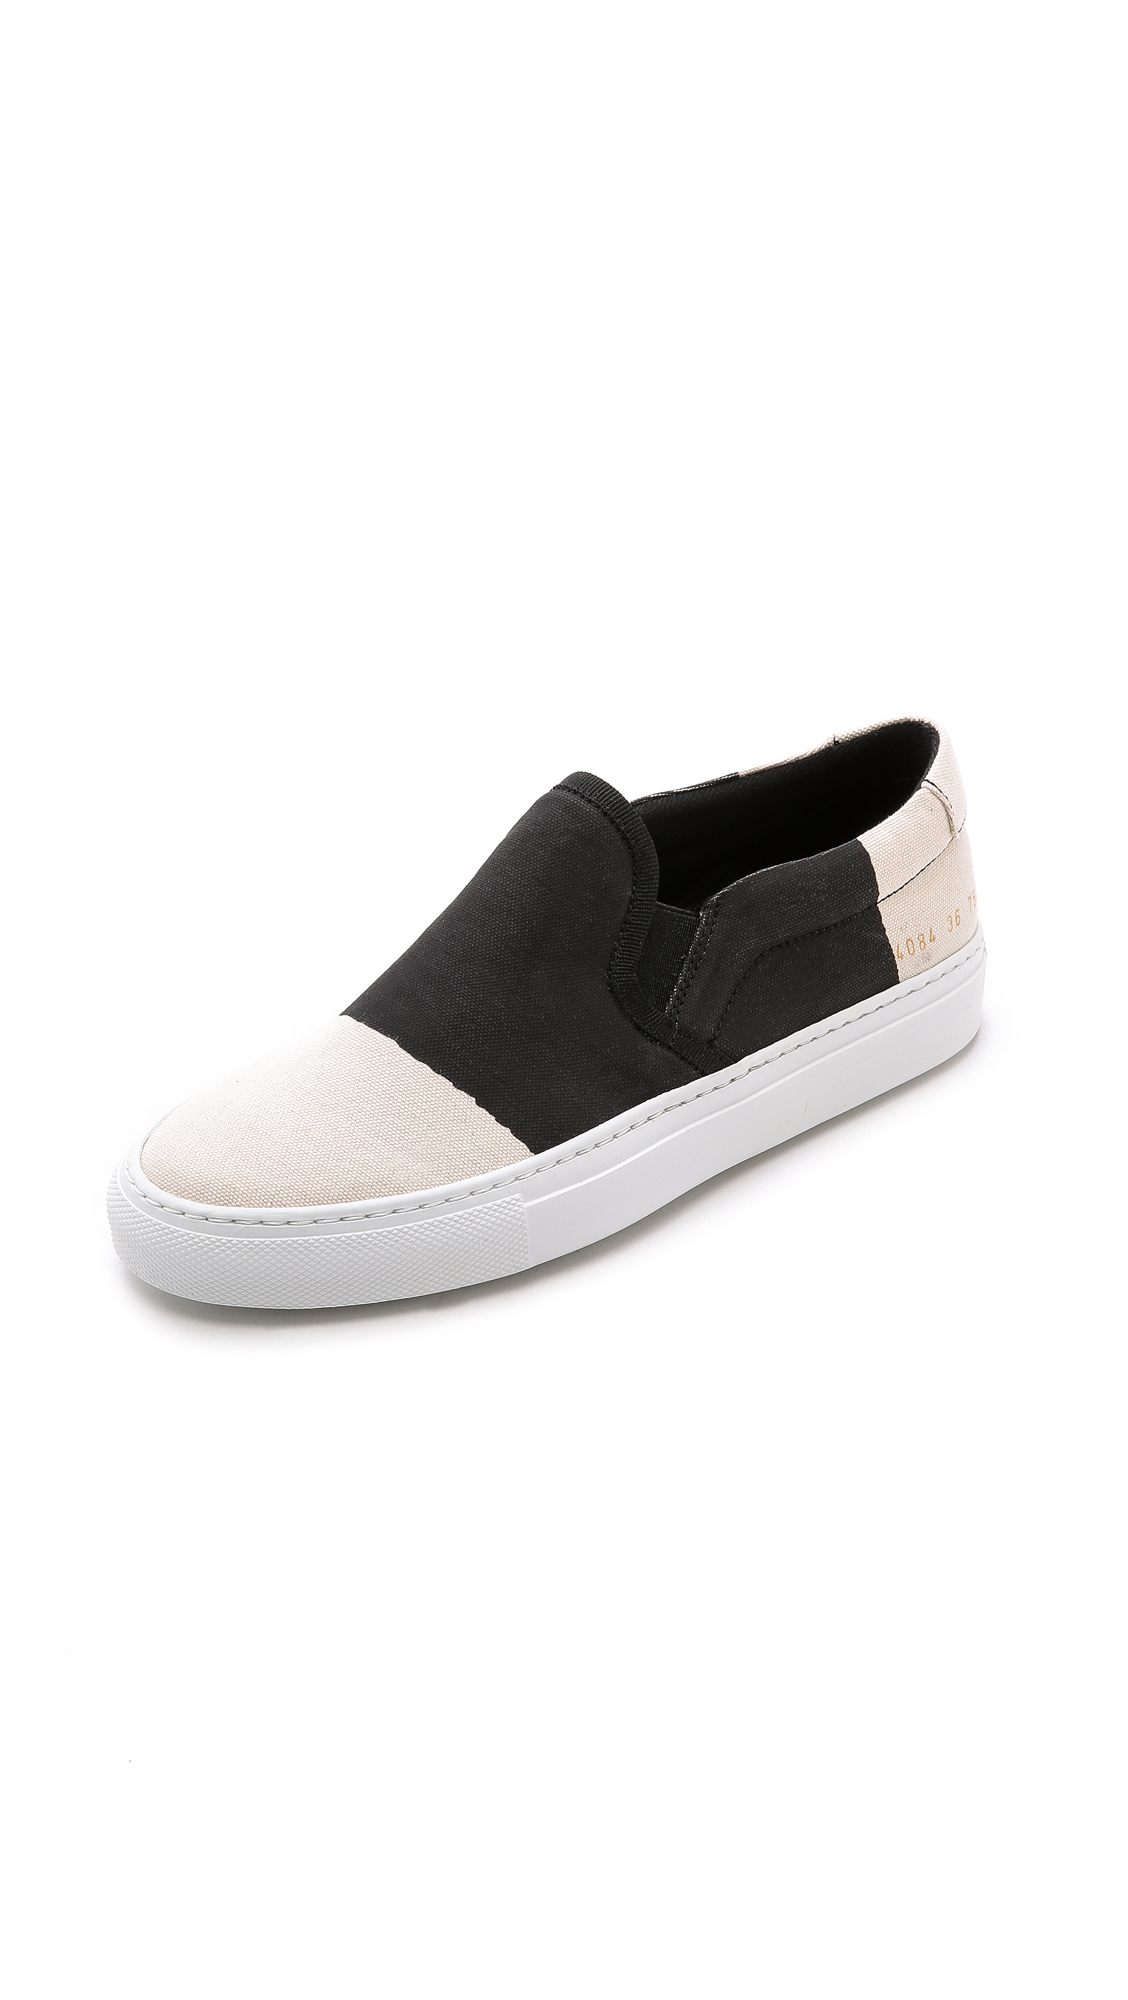 2f075b62e3ab Lyst - 6397 X Common Projects Slip On Sneakers - Black Combo in Black